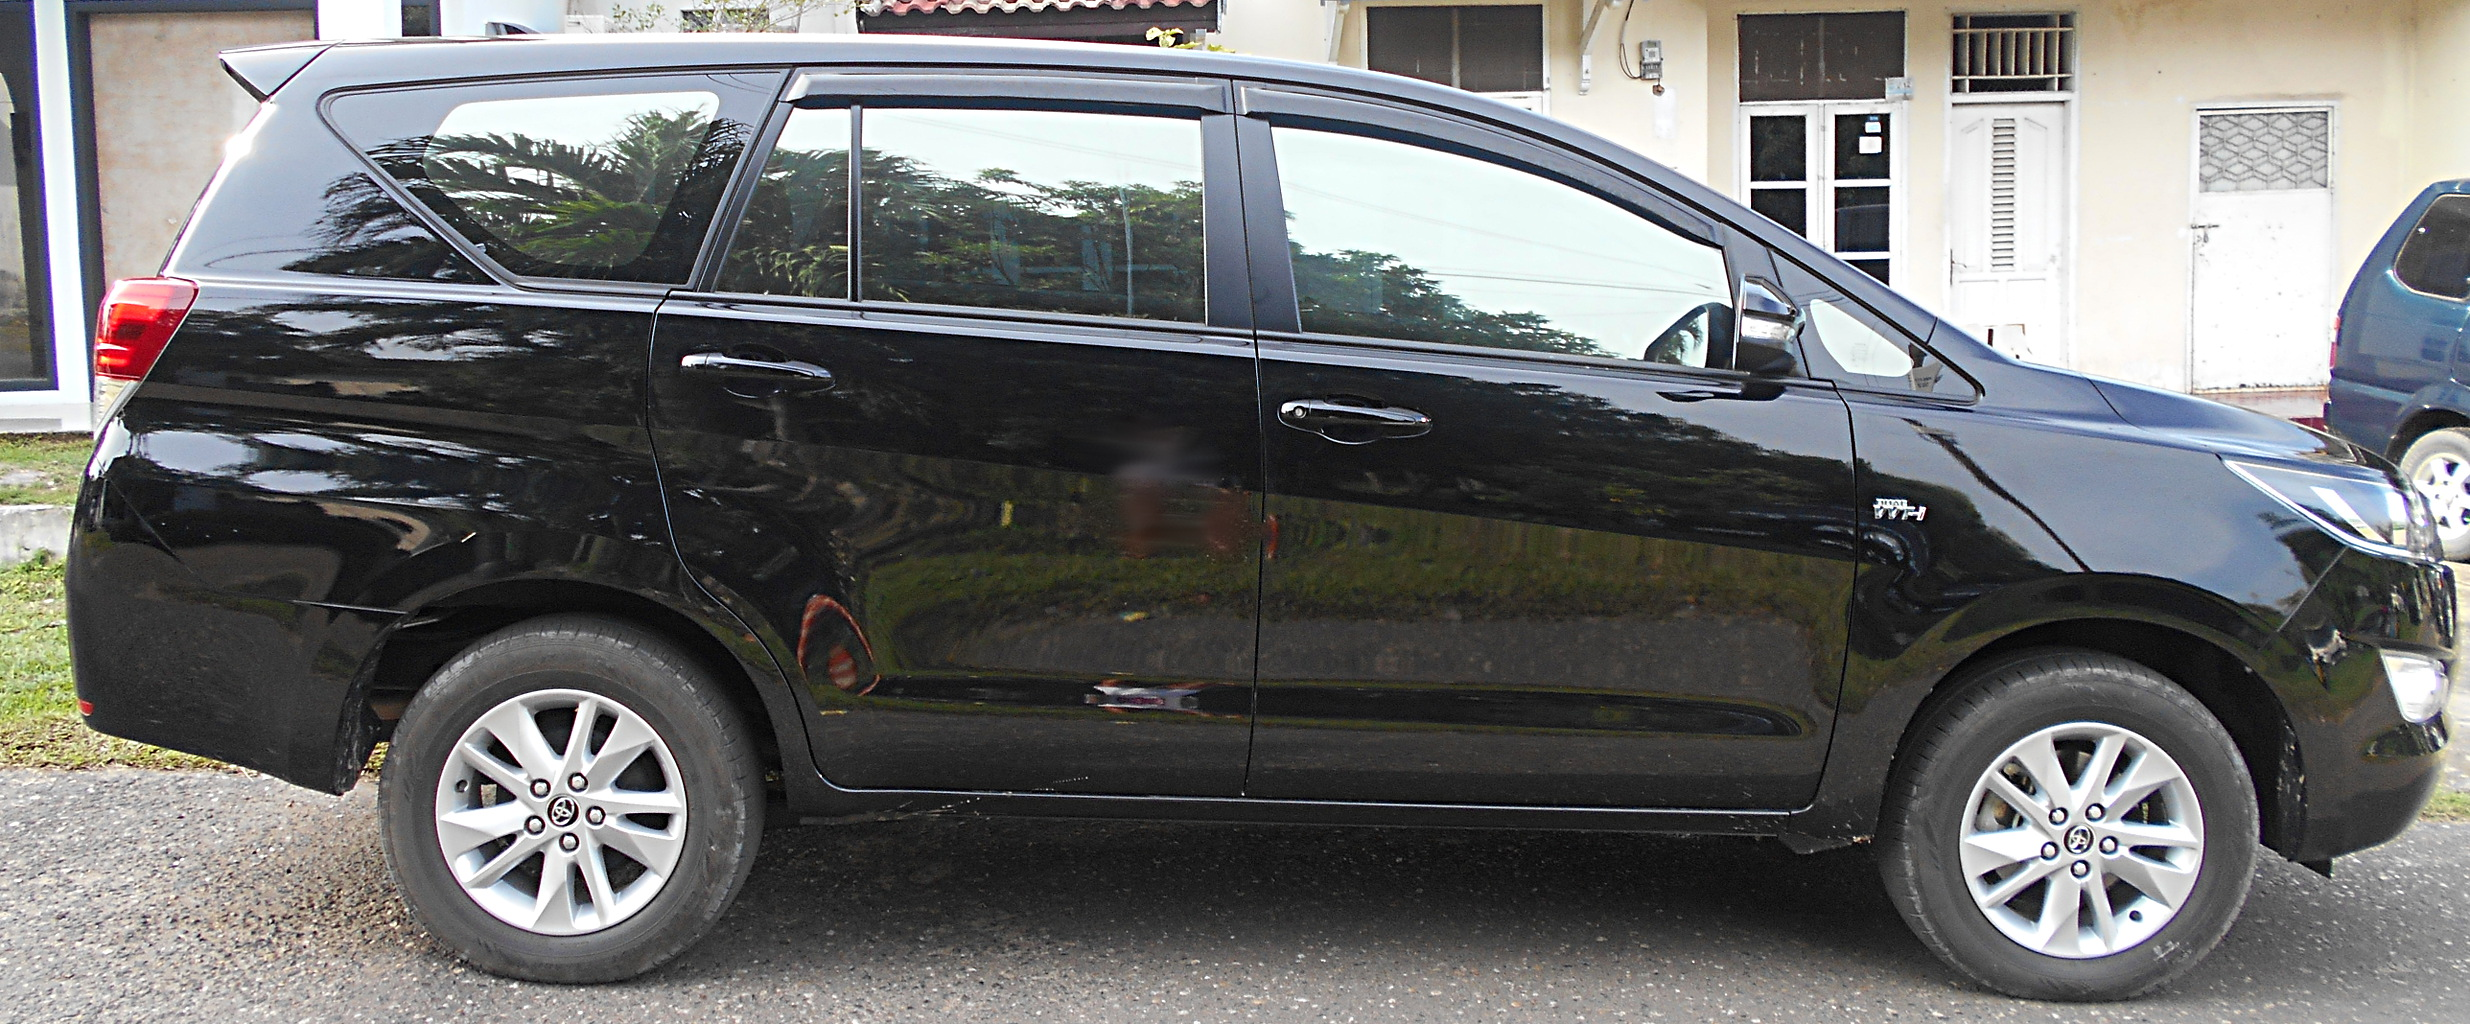 Toyota Kijang 2015 Wikipedia.html | Autos Post